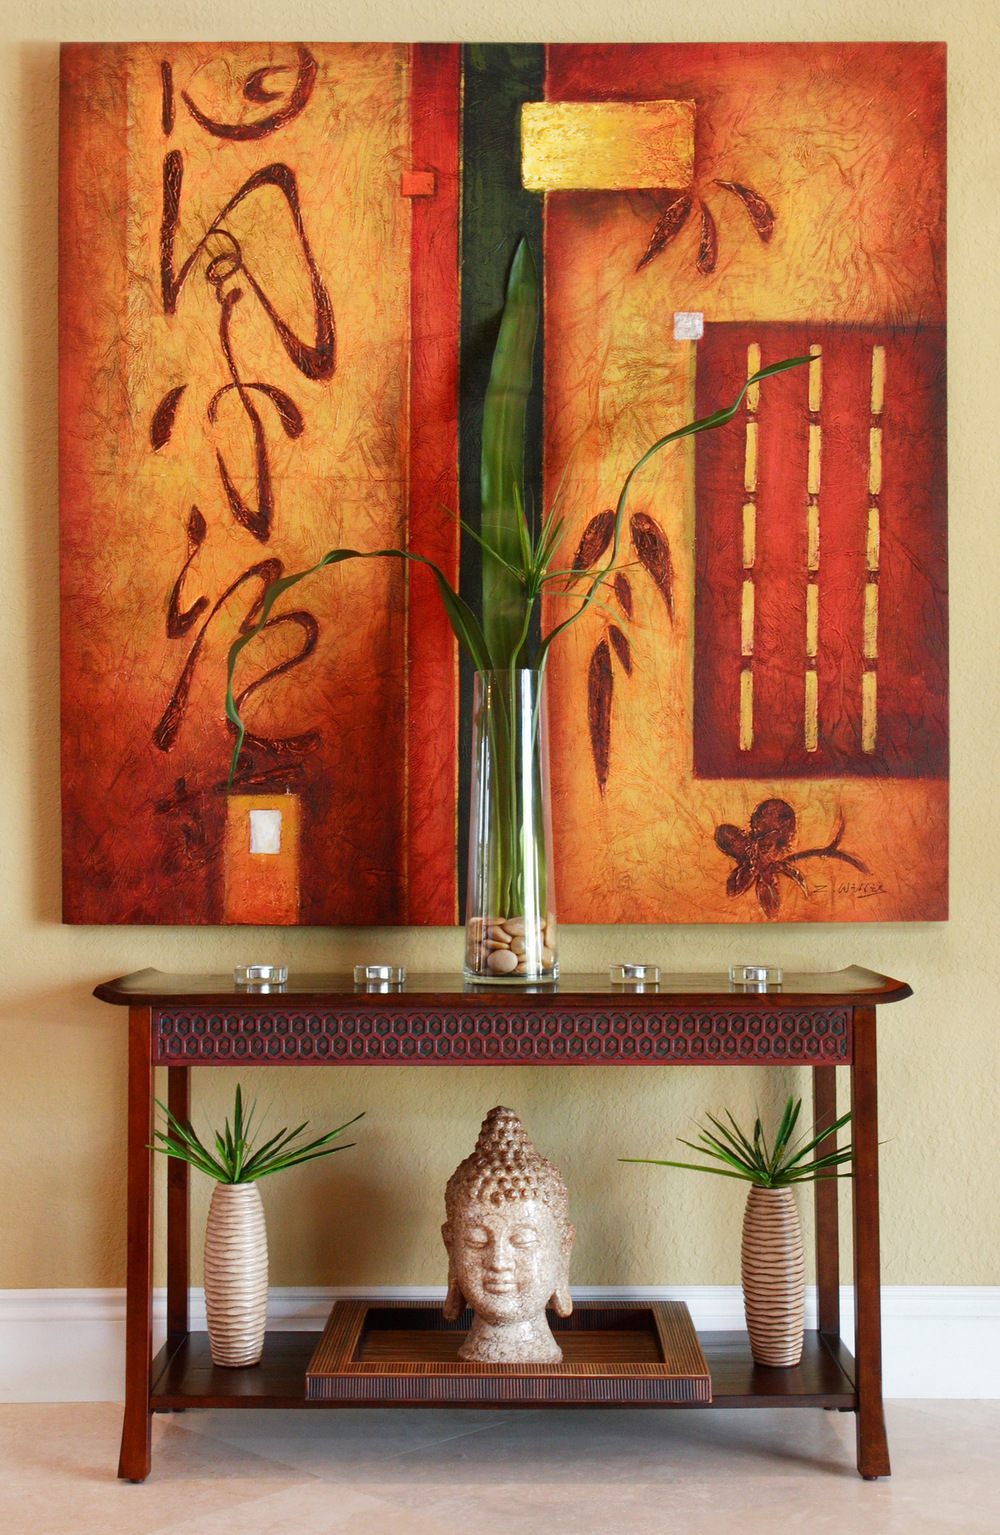 Fine art, side table, statuary, plants and candles - Interior Decorating services by Captiva Design